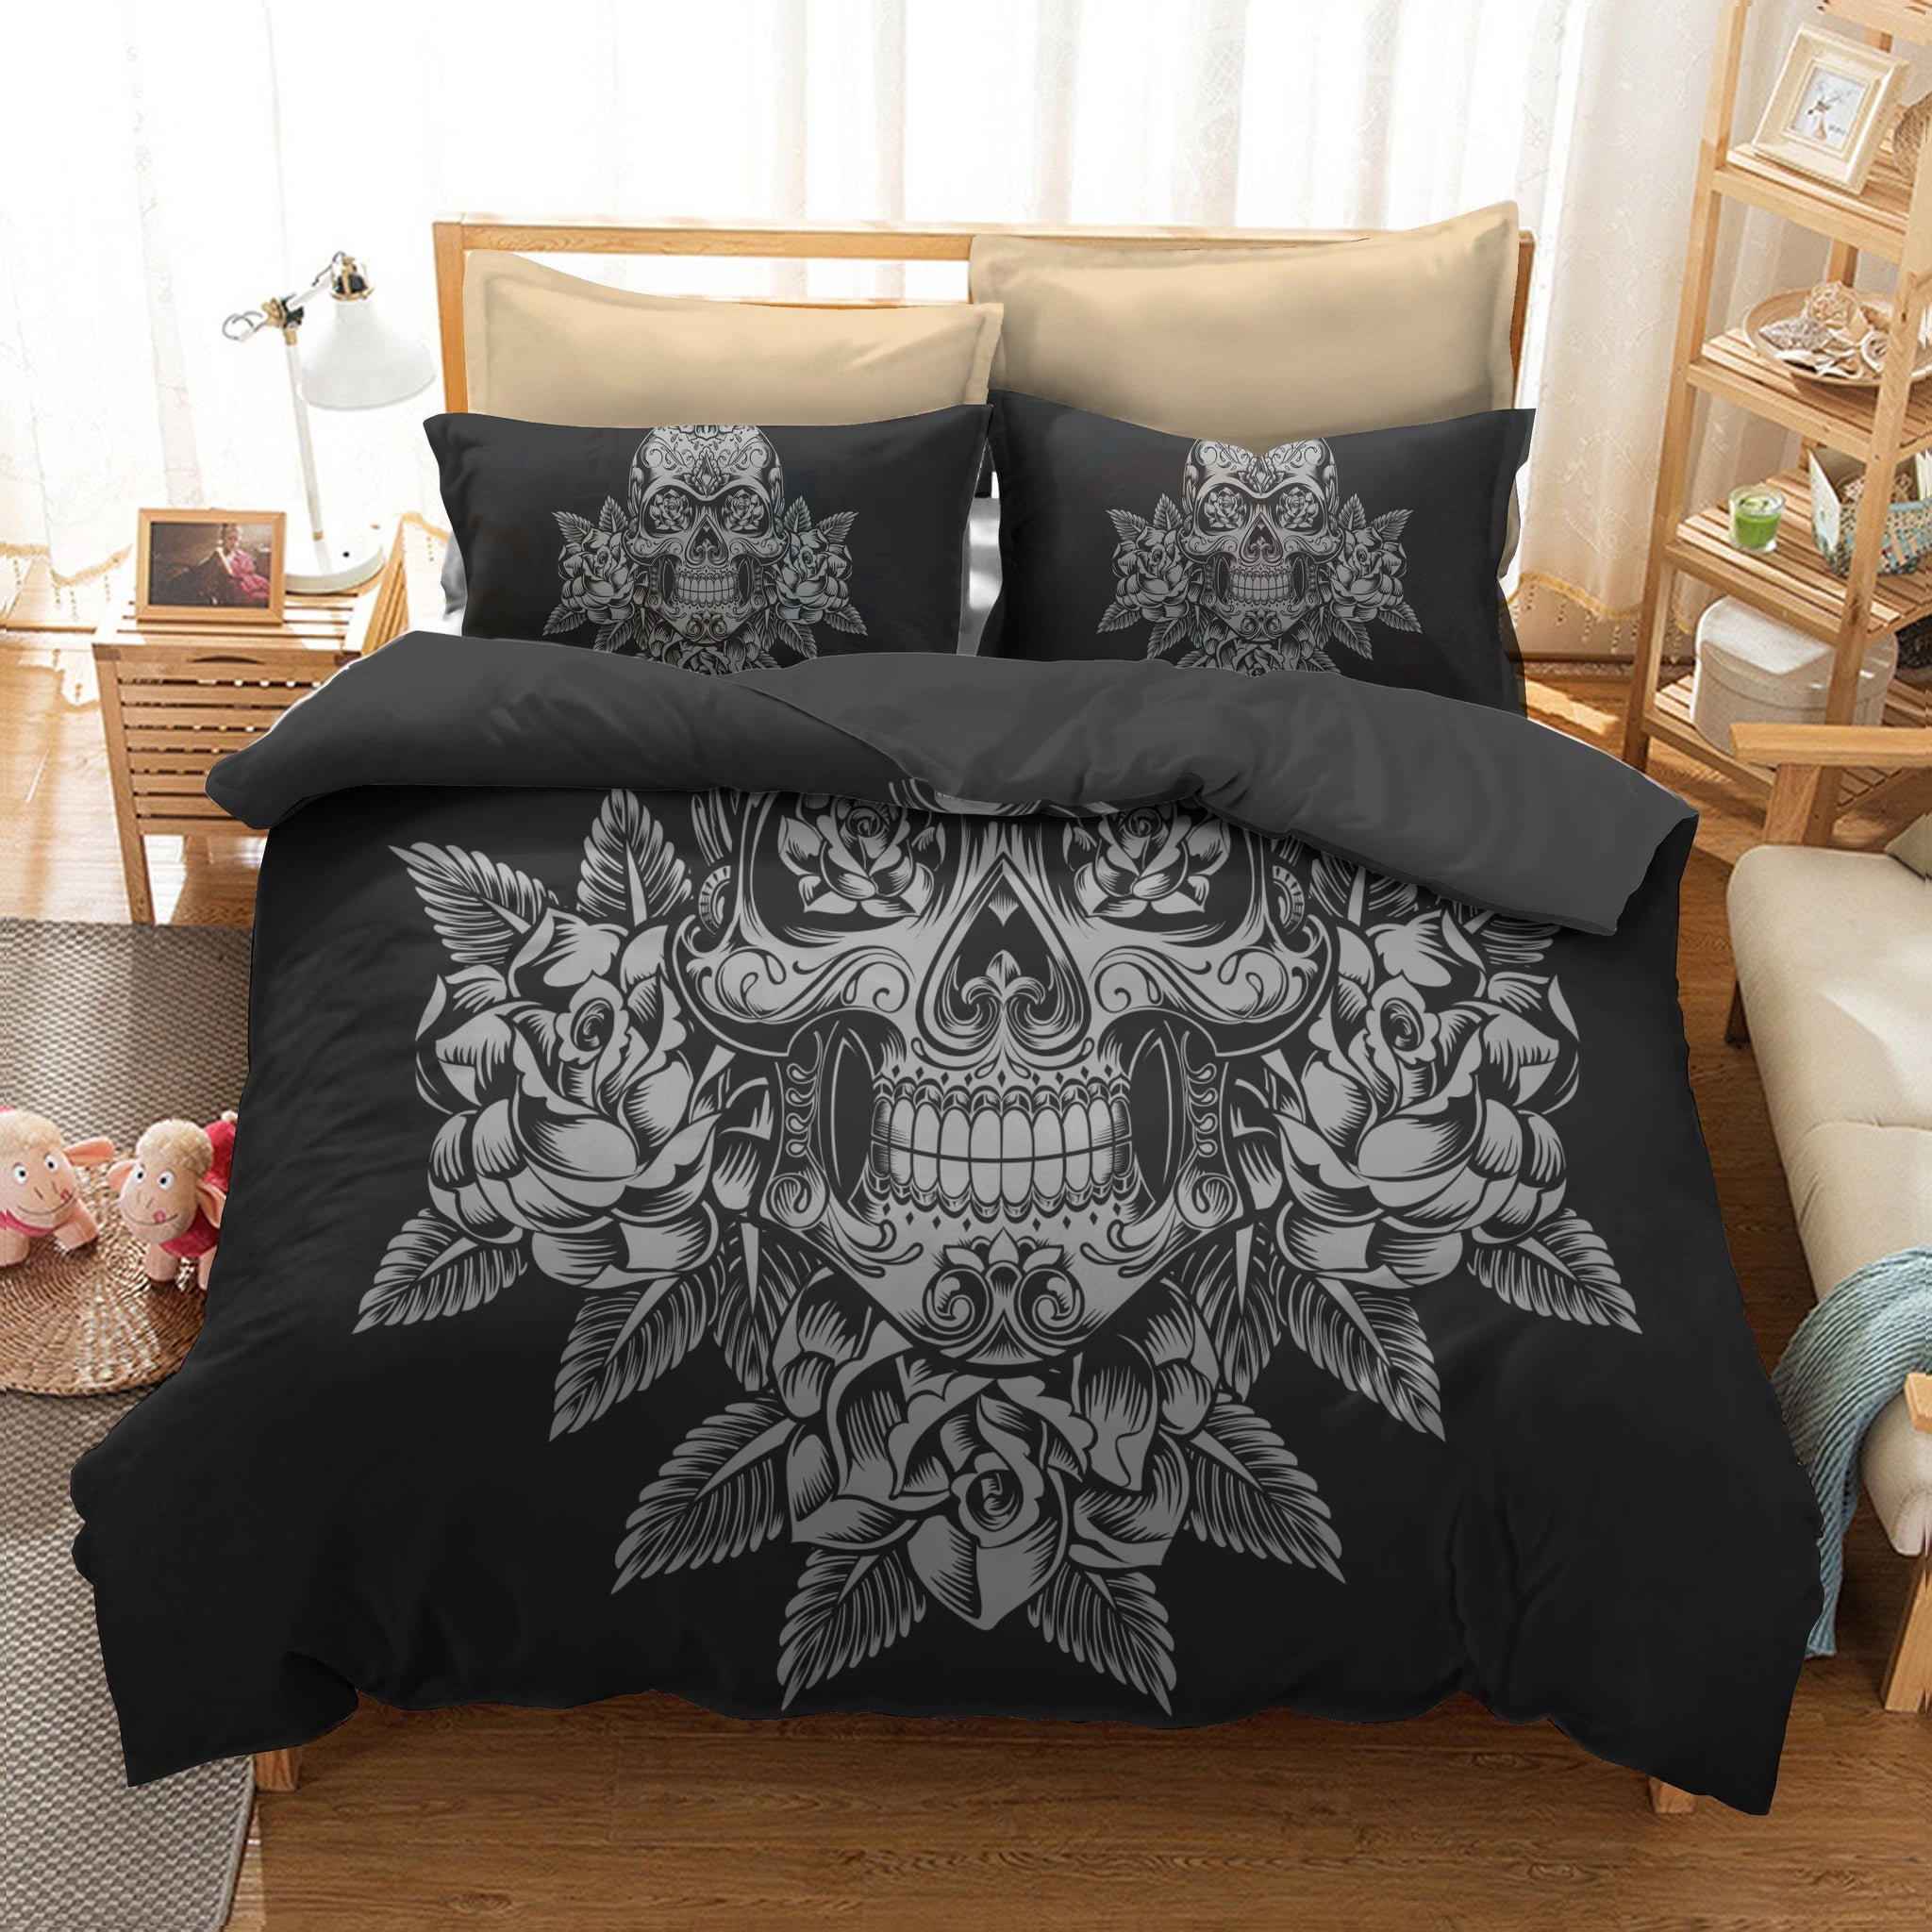 Sugar Skull & Skull Bedding Set | Skull N More | Free Shipping on $100